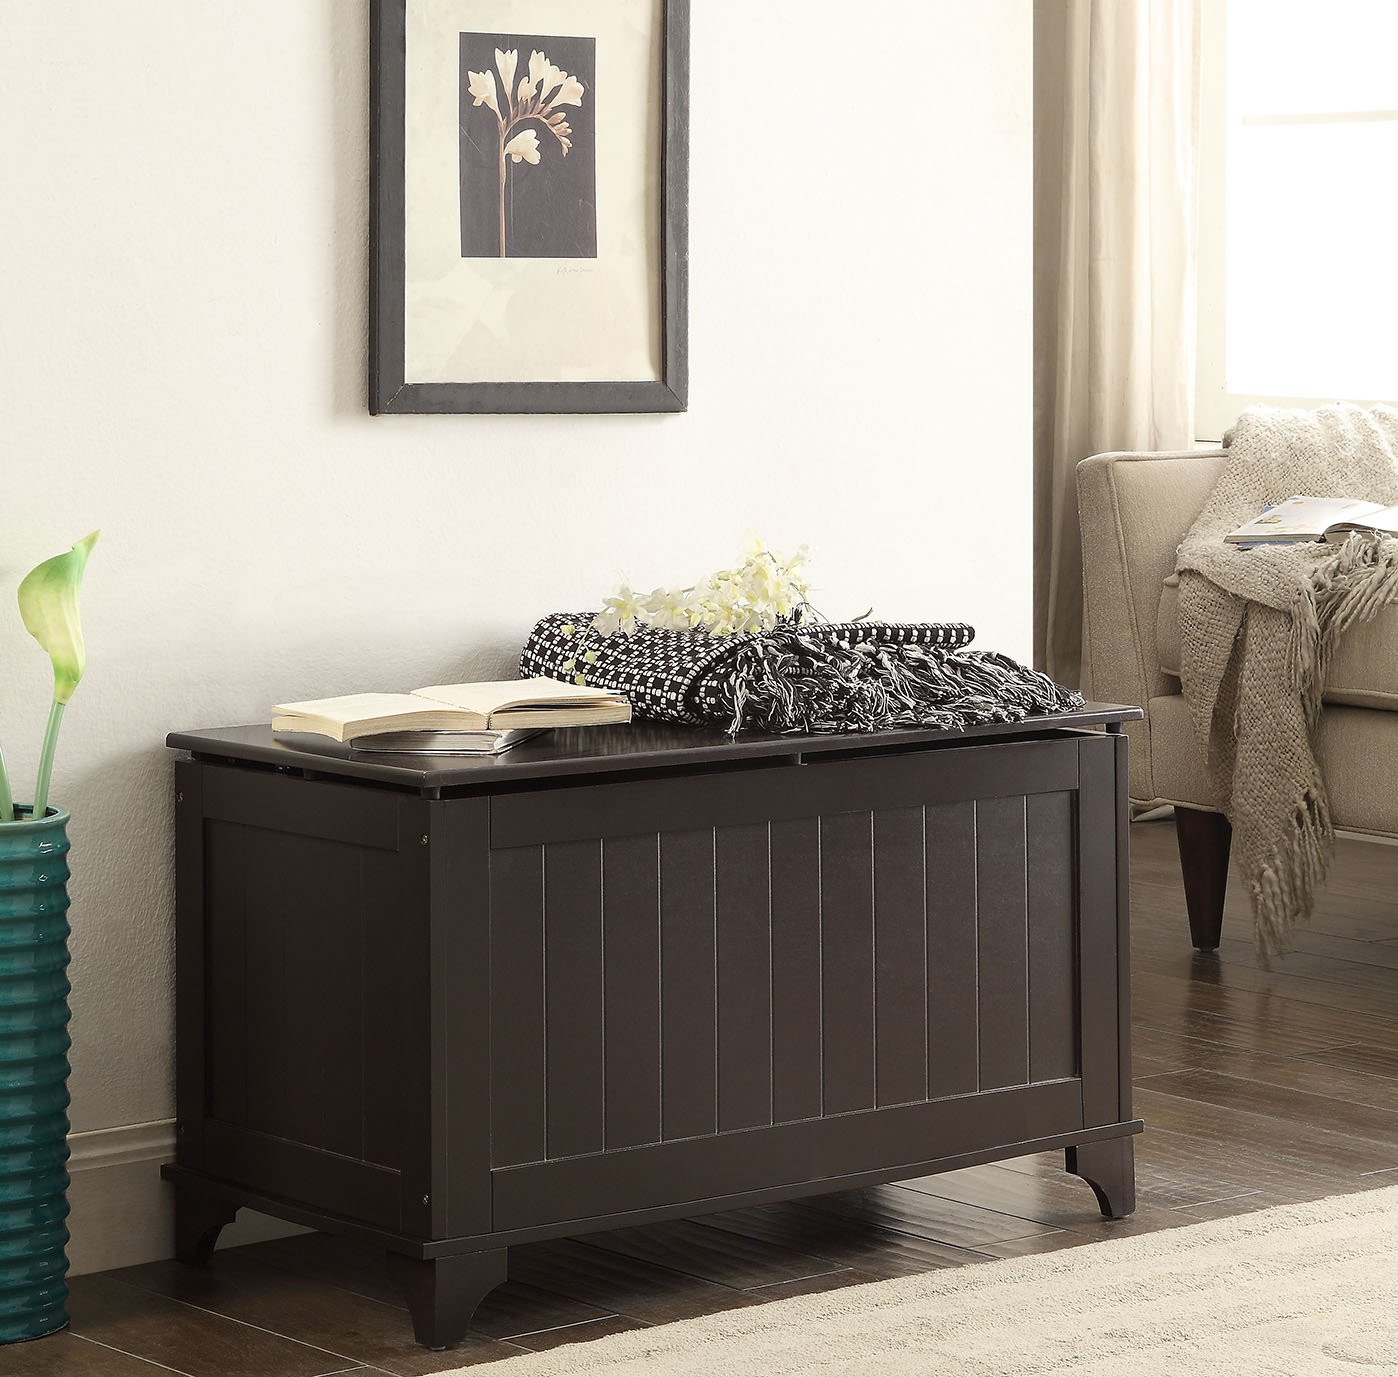 Espresso Finish Toy Blanket Storage Chest Trunk Box Bench eHomeProducts NT-20606